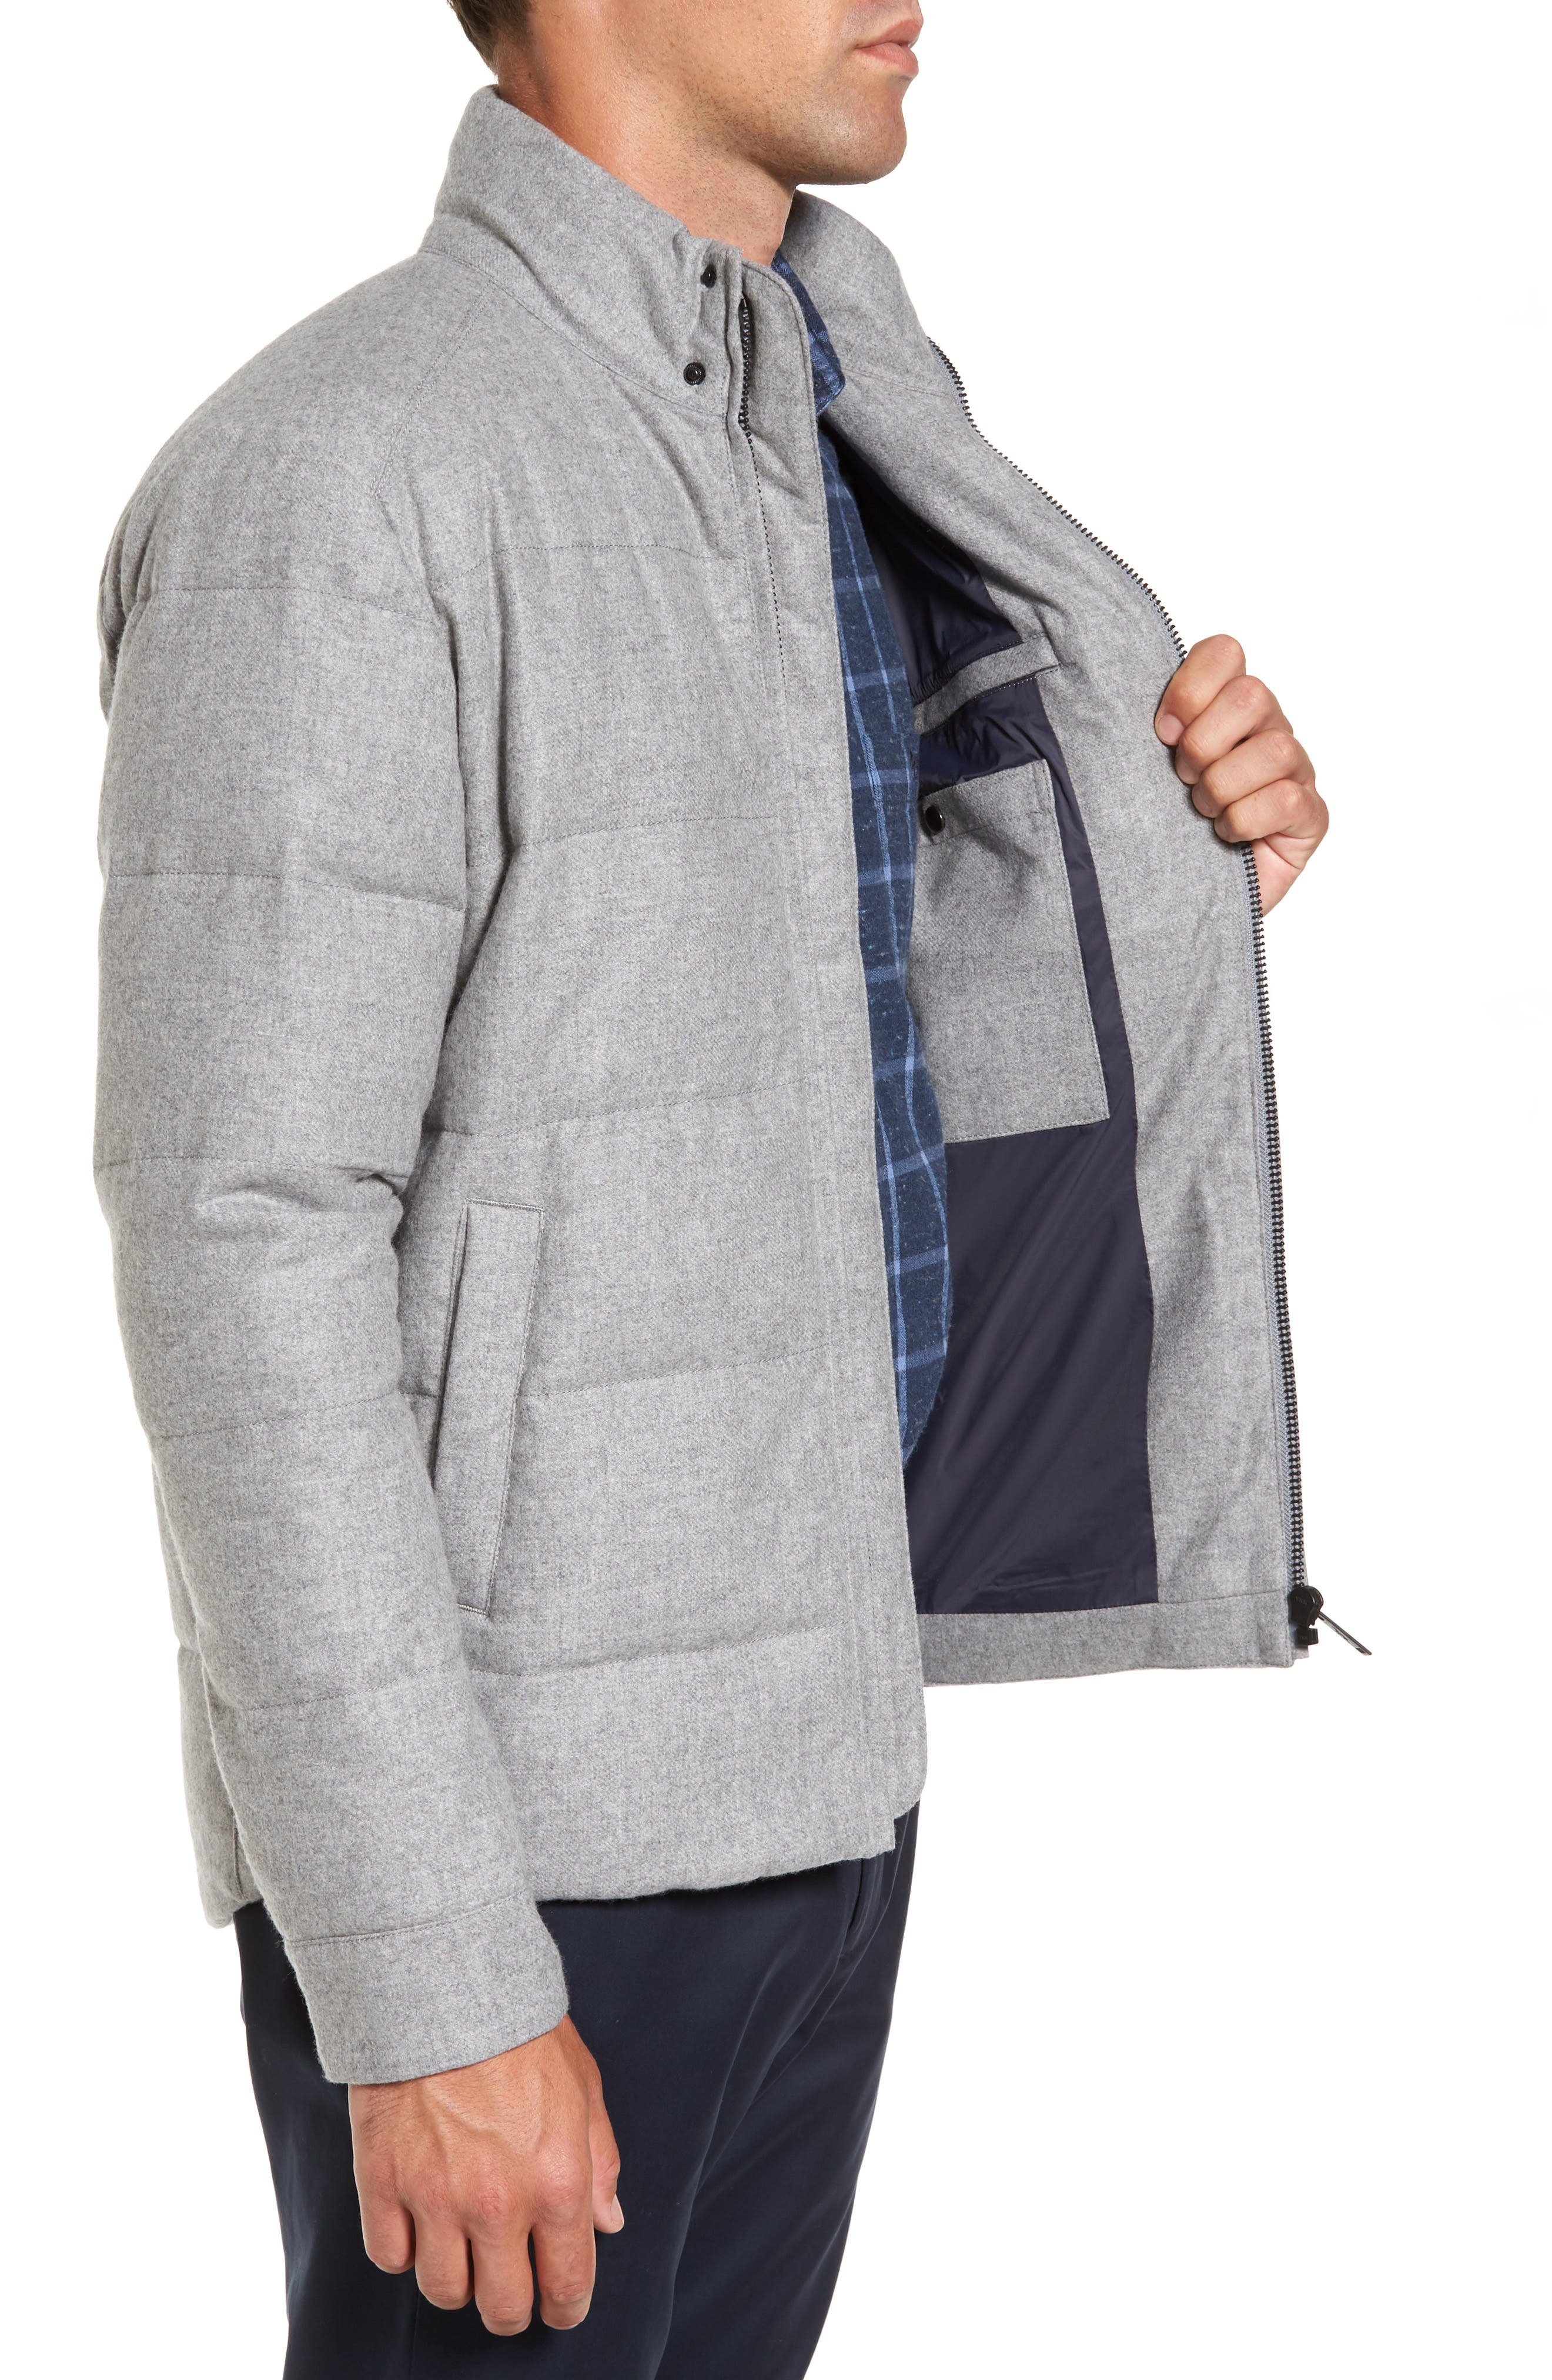 Boltons Water-Resistant Wool Down Jacket,                             Alternate thumbnail 3, color,                             Ash